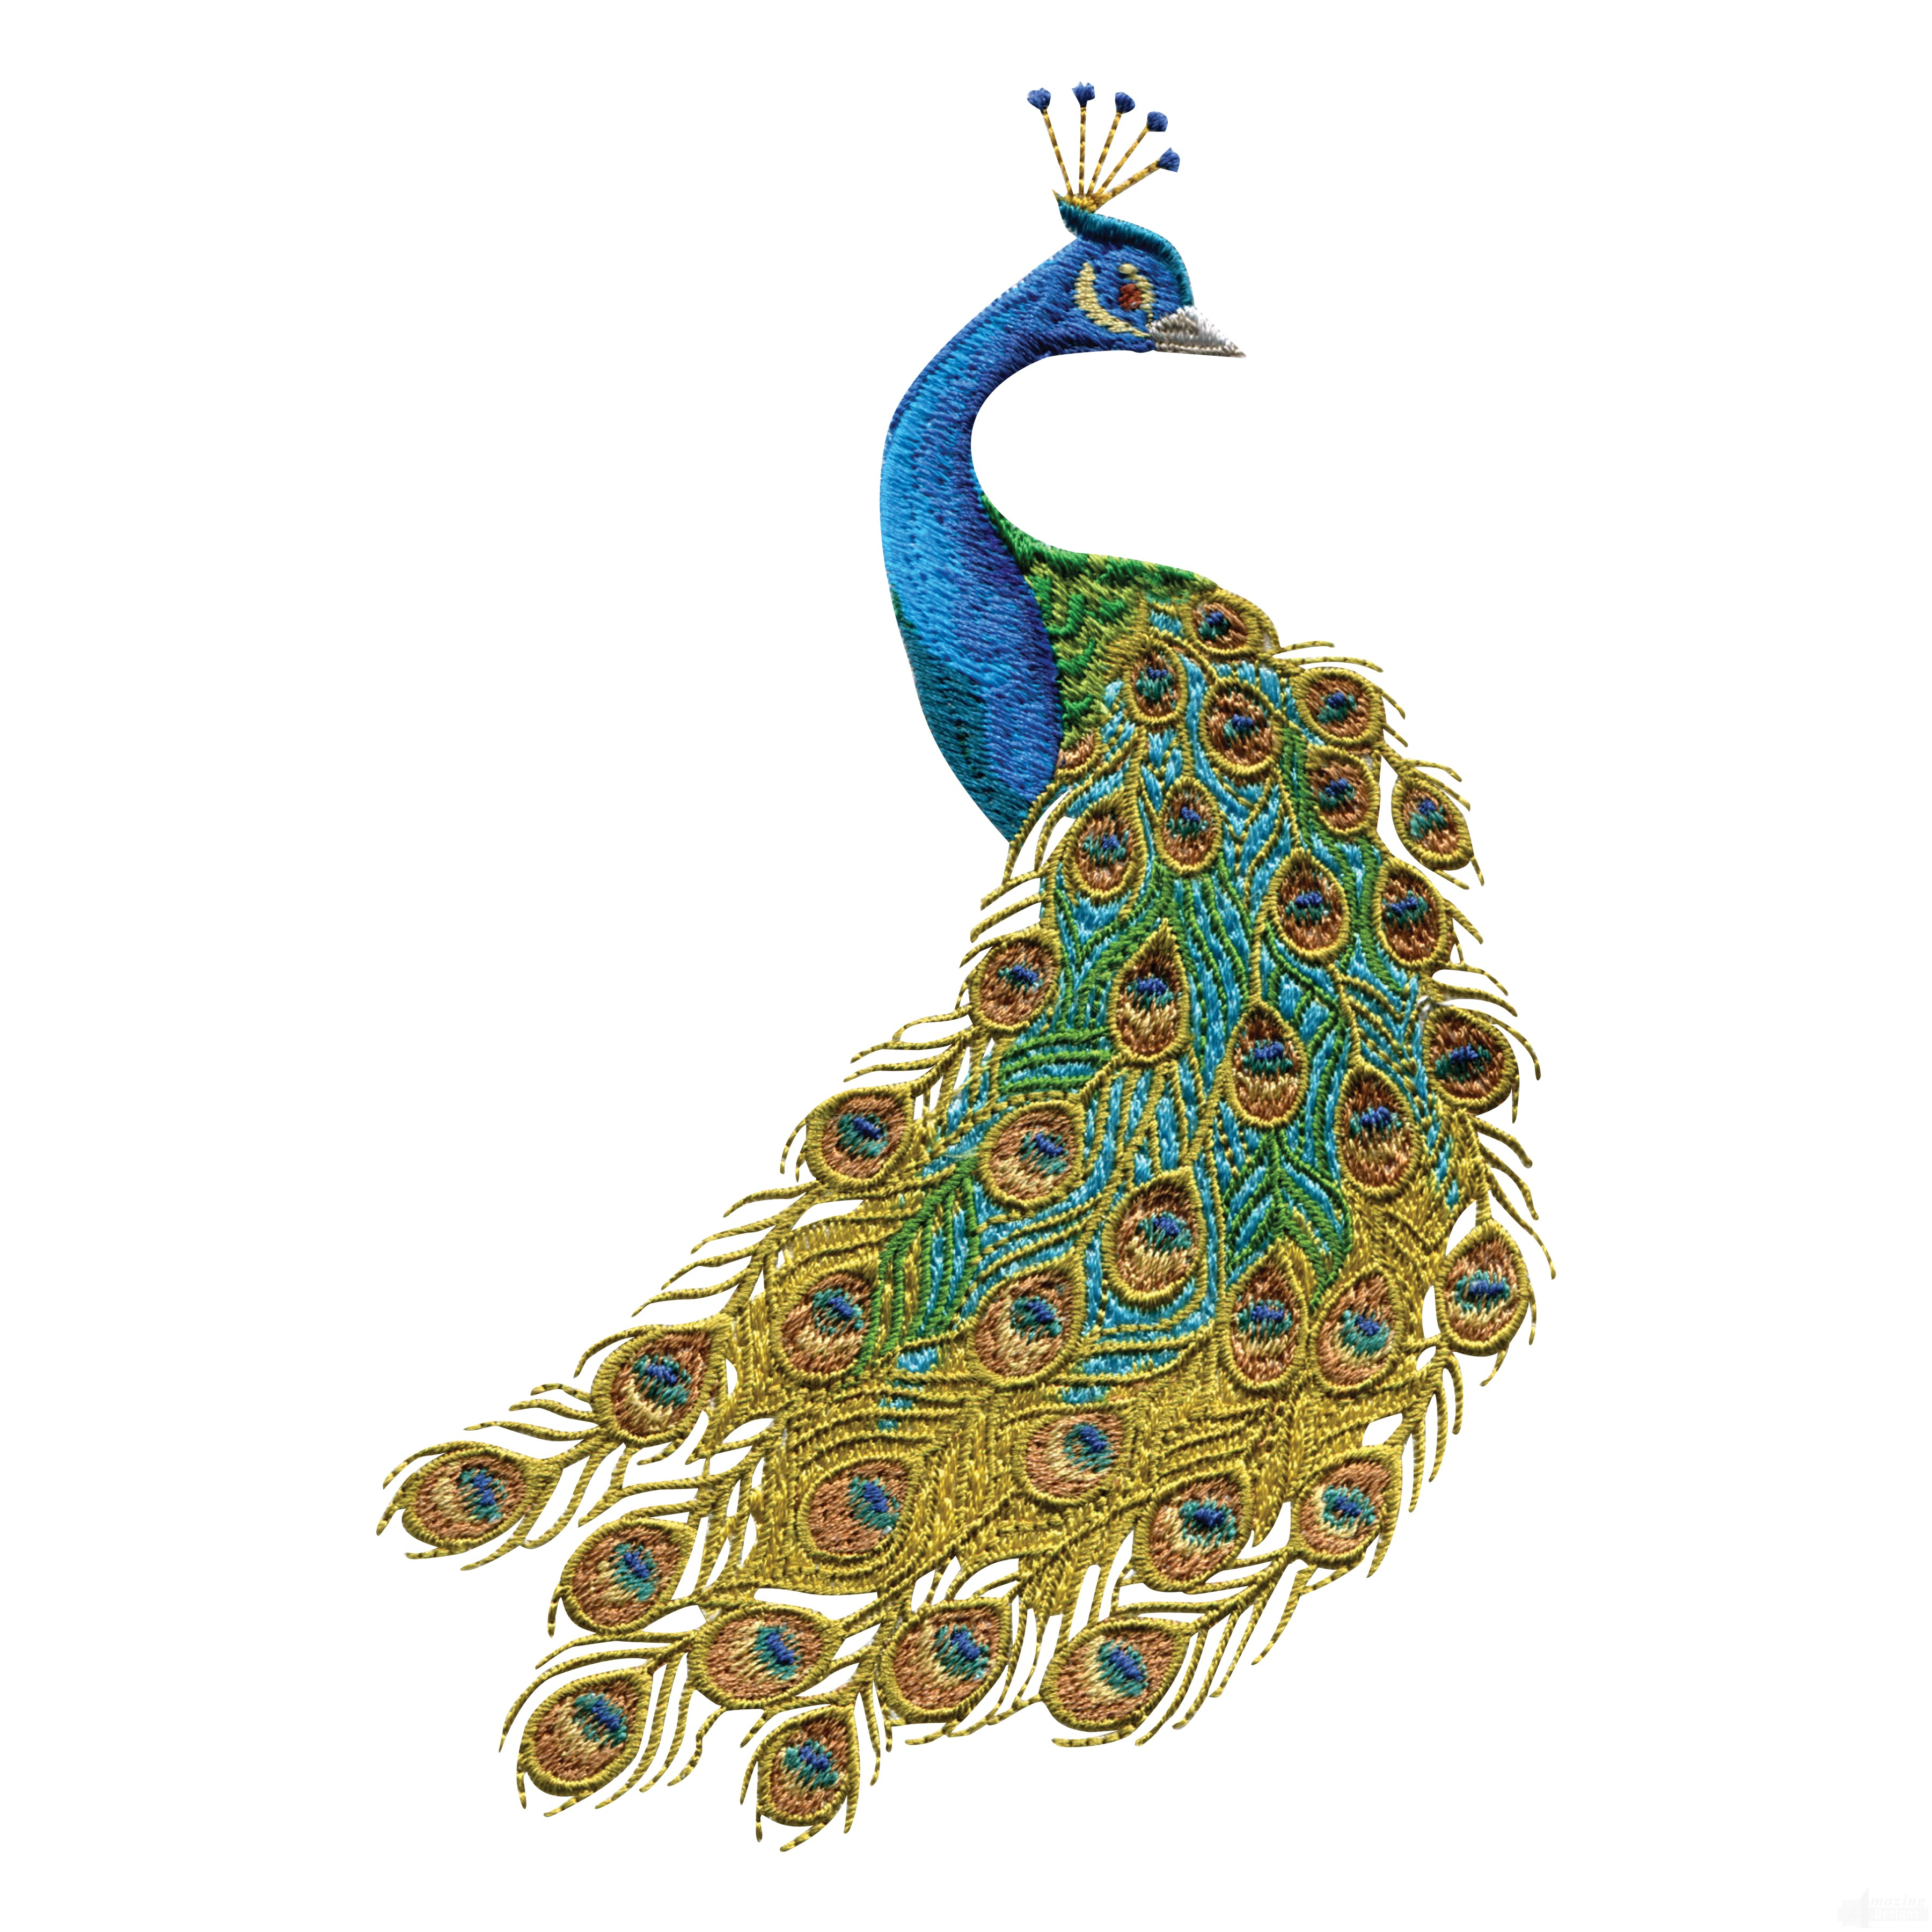 Free peacock clipart vector transparent library Free Peacock Clipart | Free download best Free Peacock Clipart on ... vector transparent library